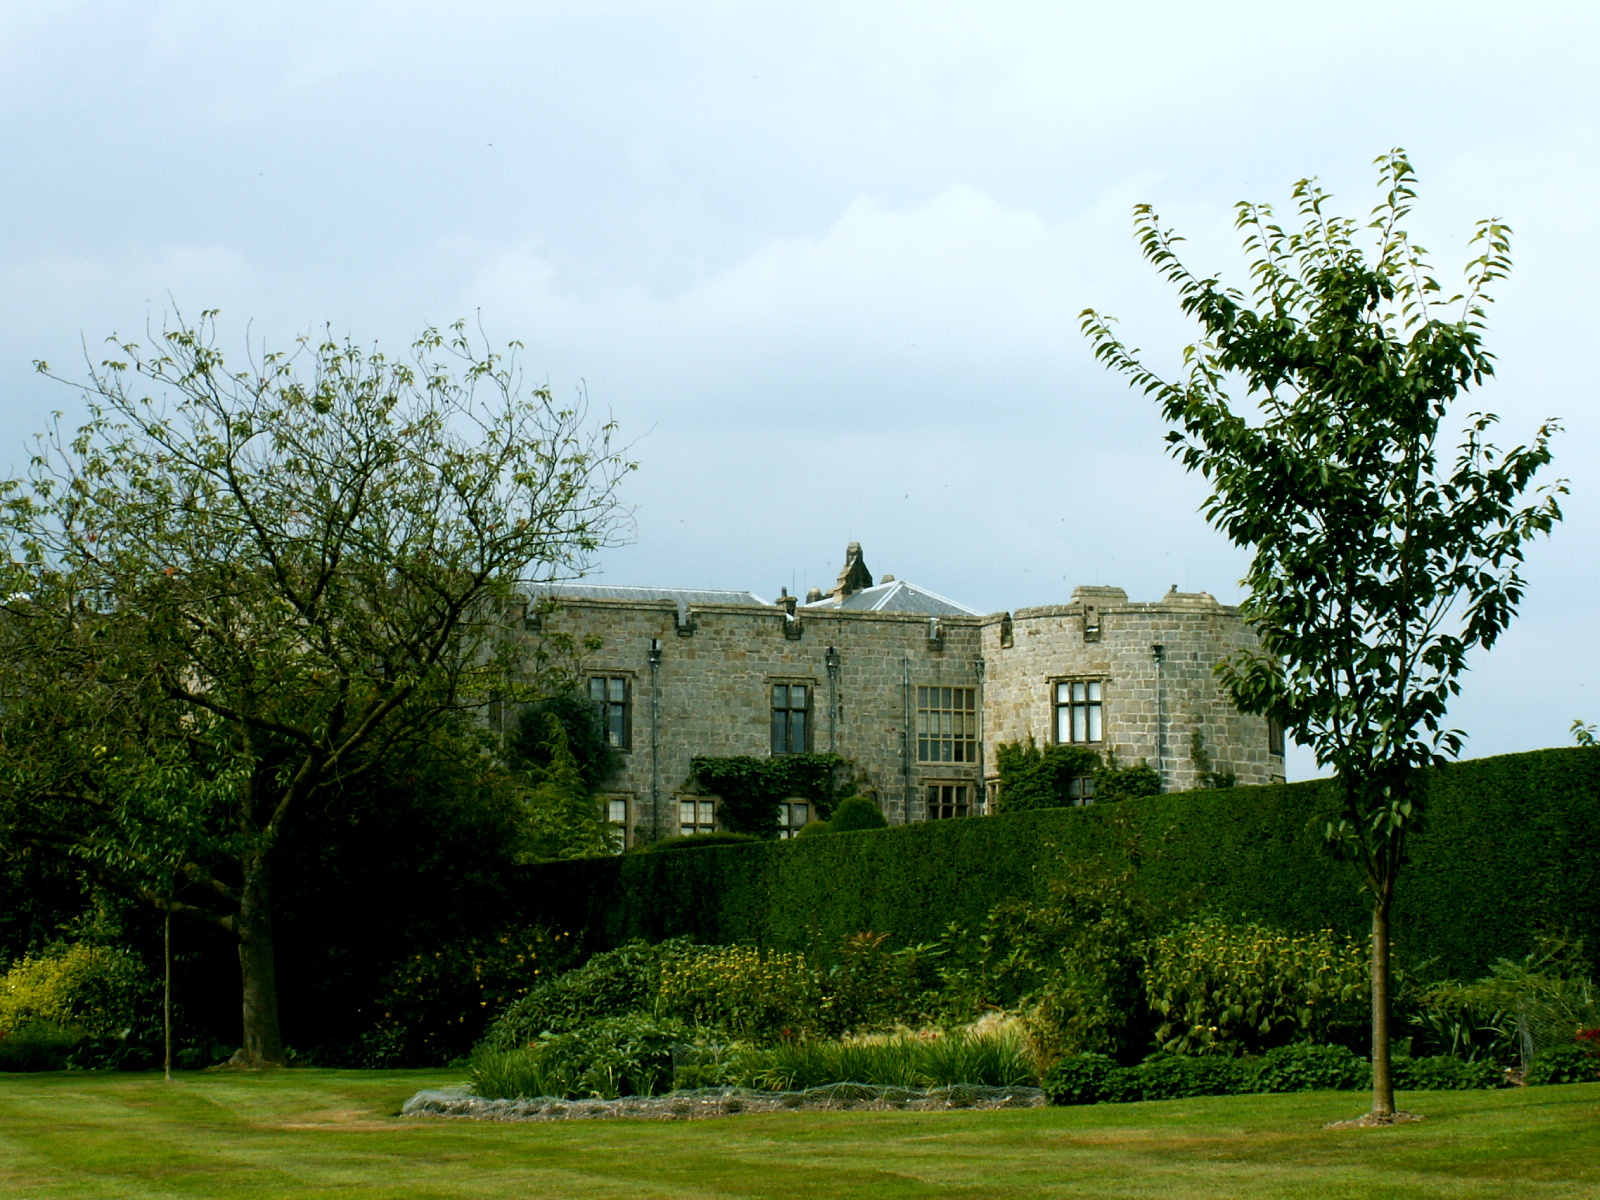 Chirk Castle was completed in 1310 during the reign of the King Edward I.